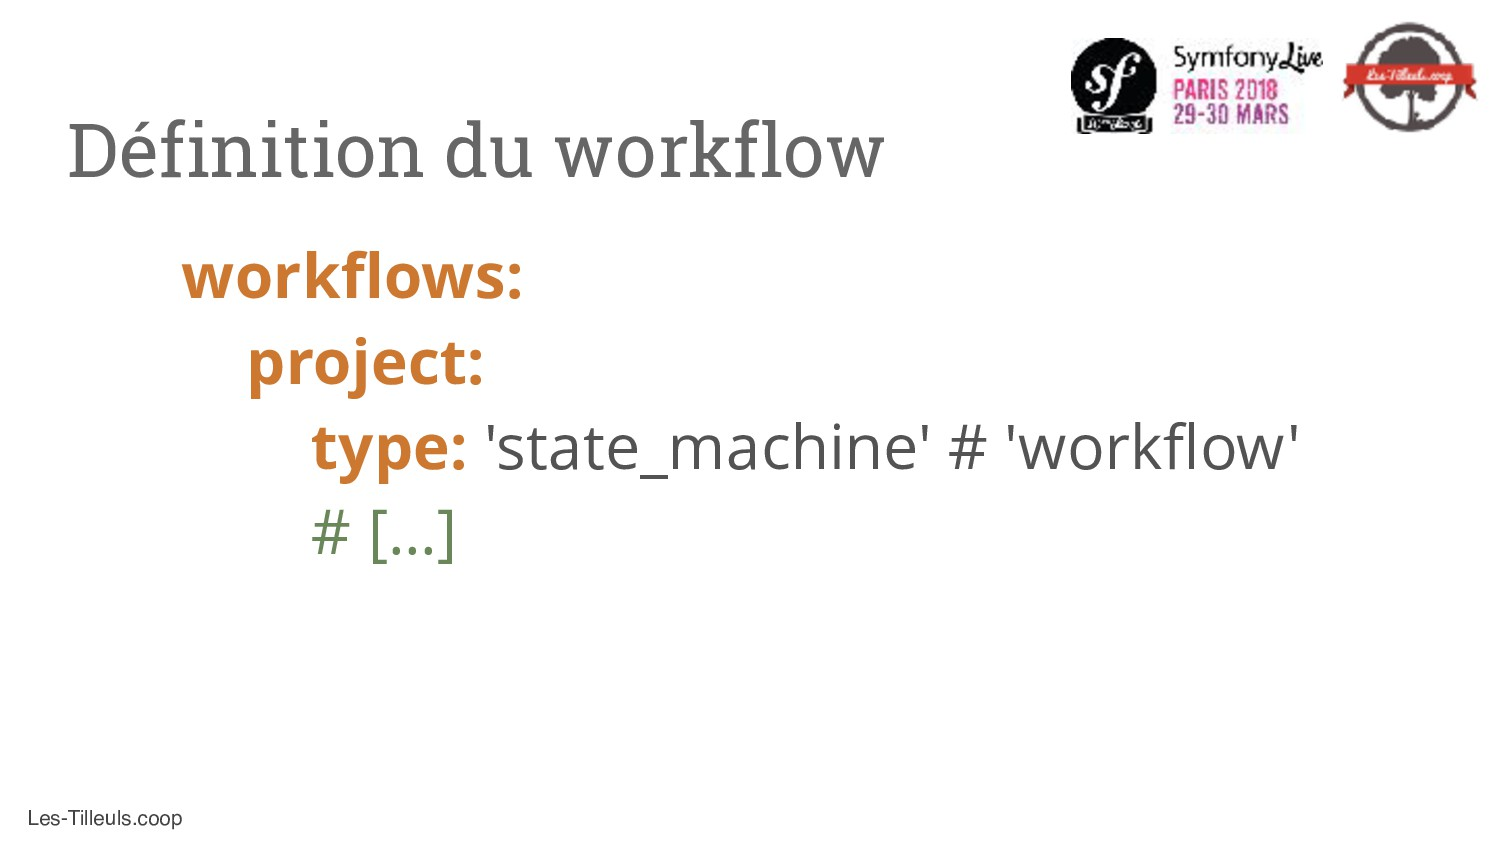 Les-Tilleuls.coop workflows: project: type: 'st...